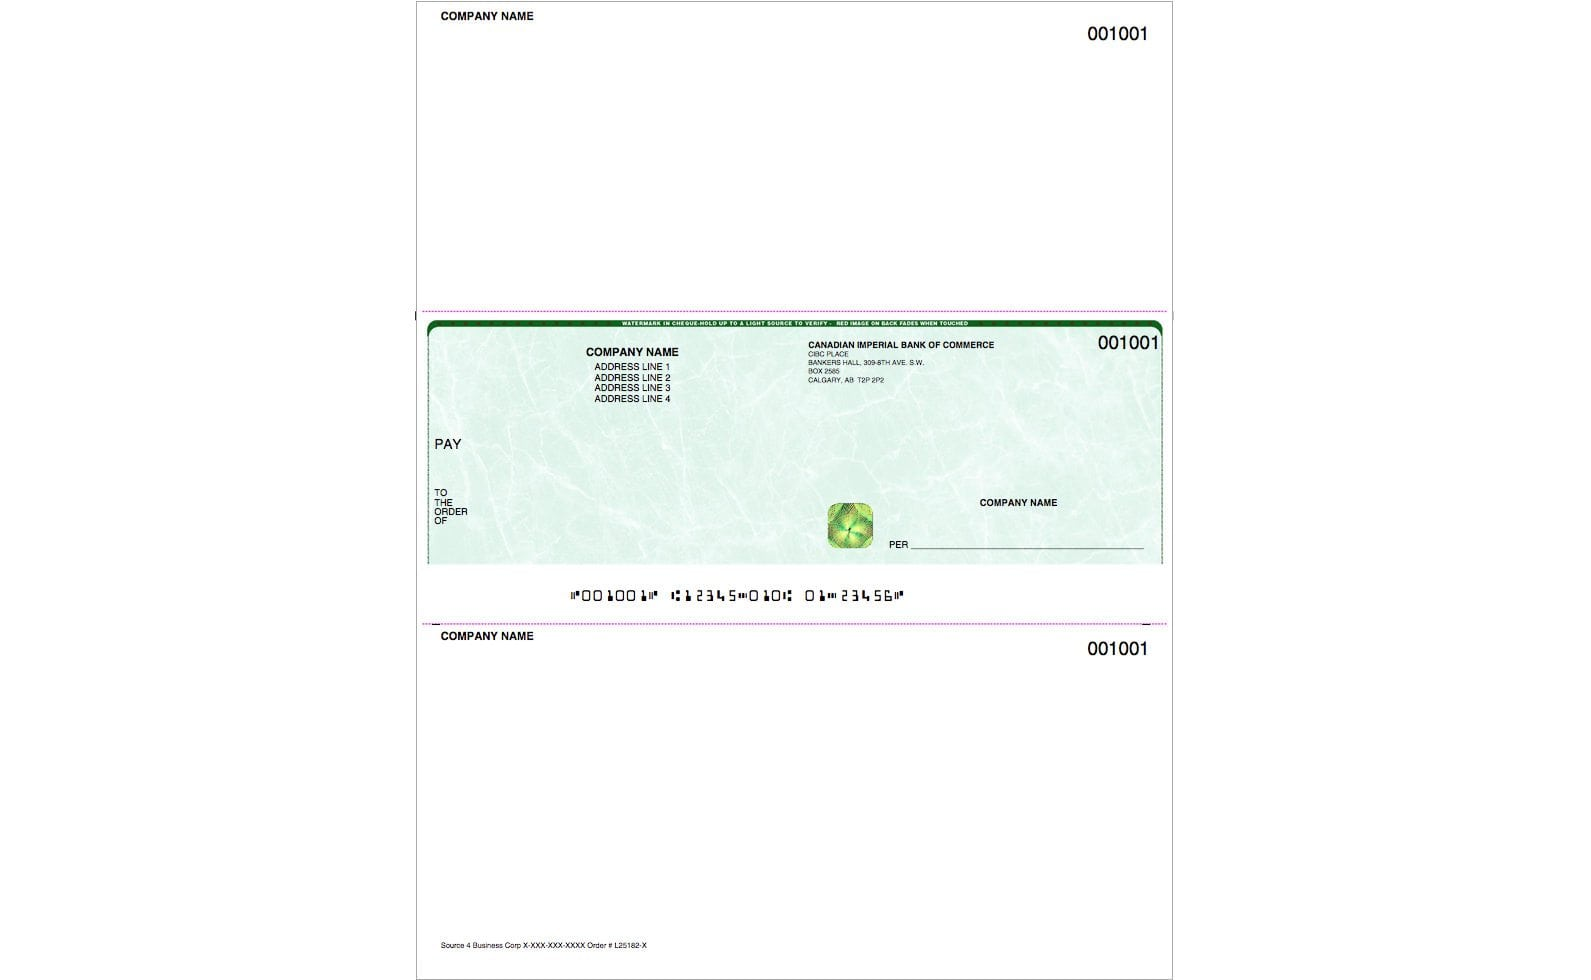 Middle laser cheque with hologram gold foil